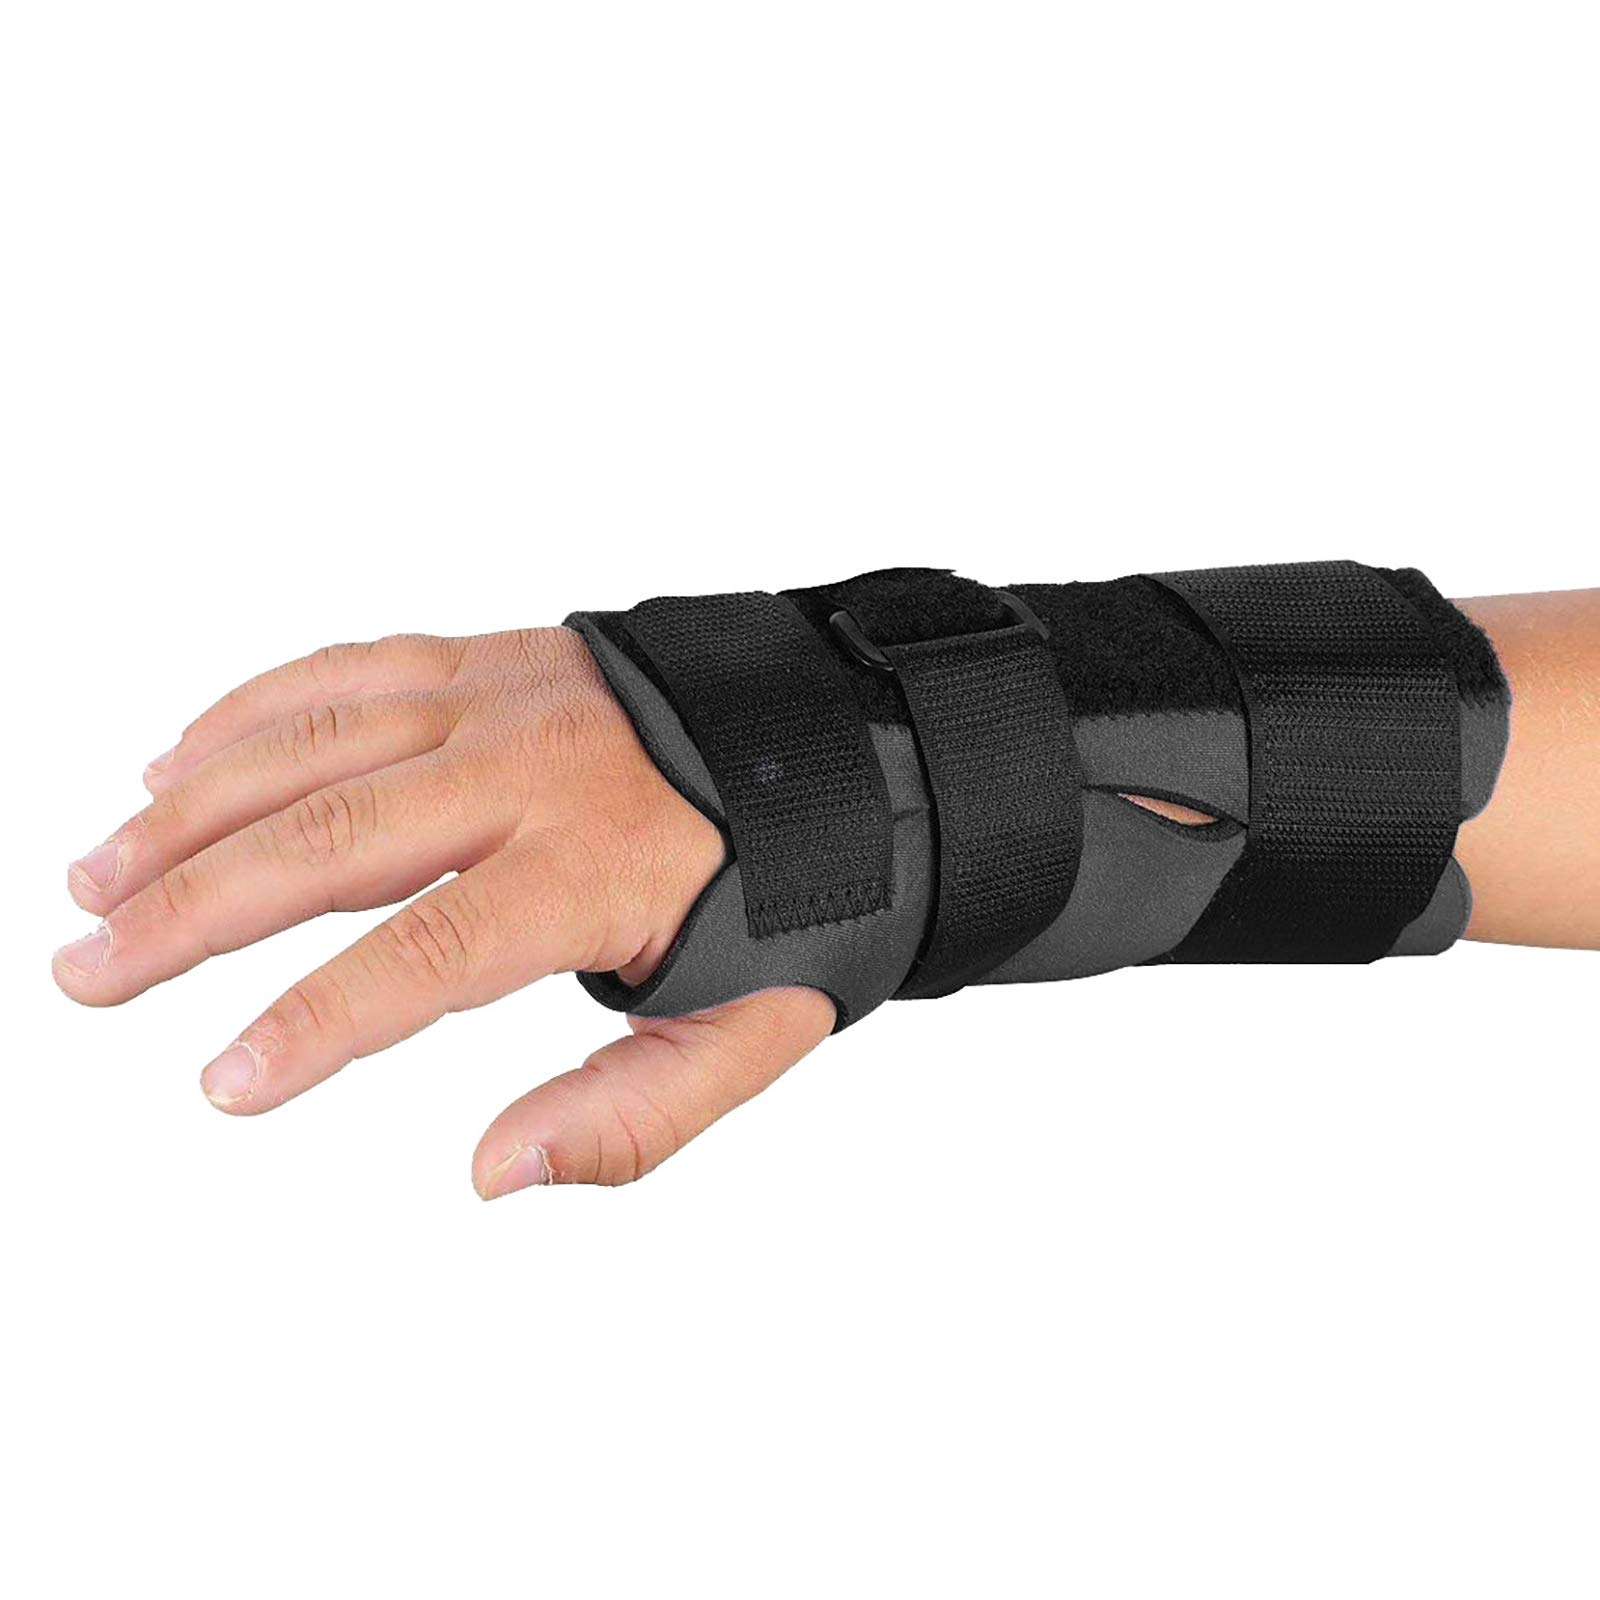 Sammons Preston Breathoprene Pediatric Wrist Splint, Right, Small, Orthopedic Support Brace for Tendonitis, Inflammation, Carpal Tunnel, Thumb Injuries & Pain, Breathable & Comfortable Compression